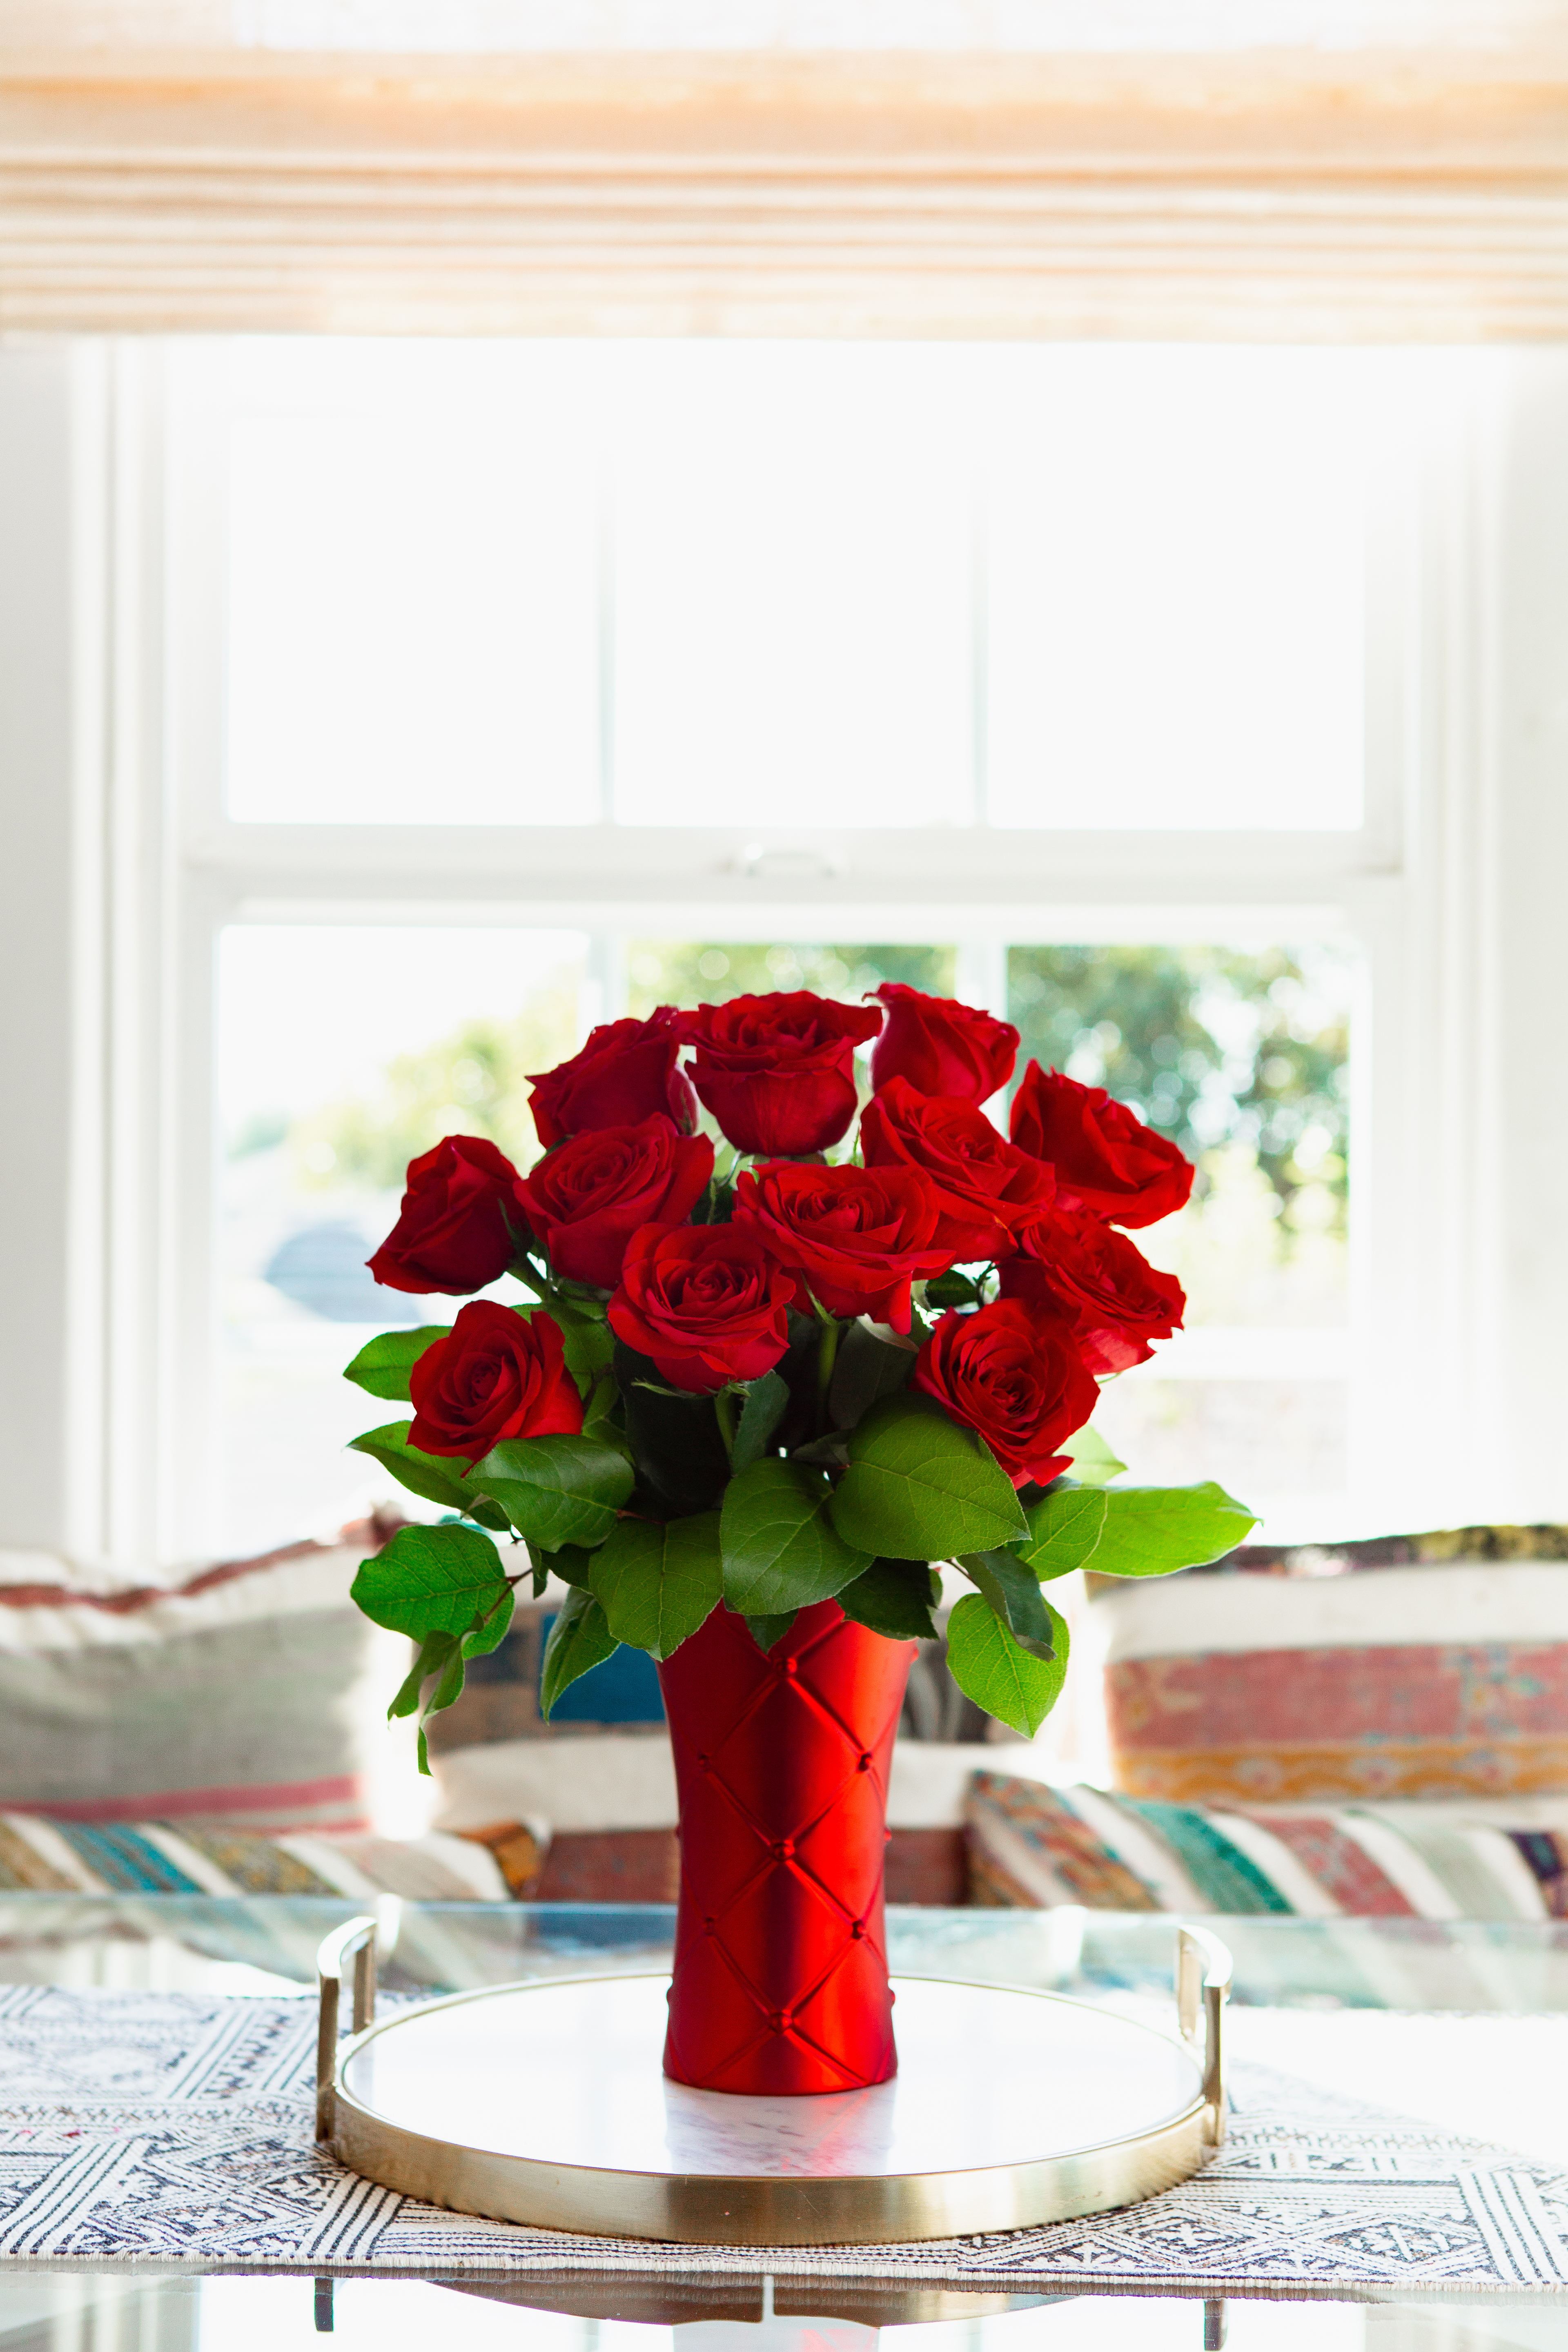 red roses in red vase on table